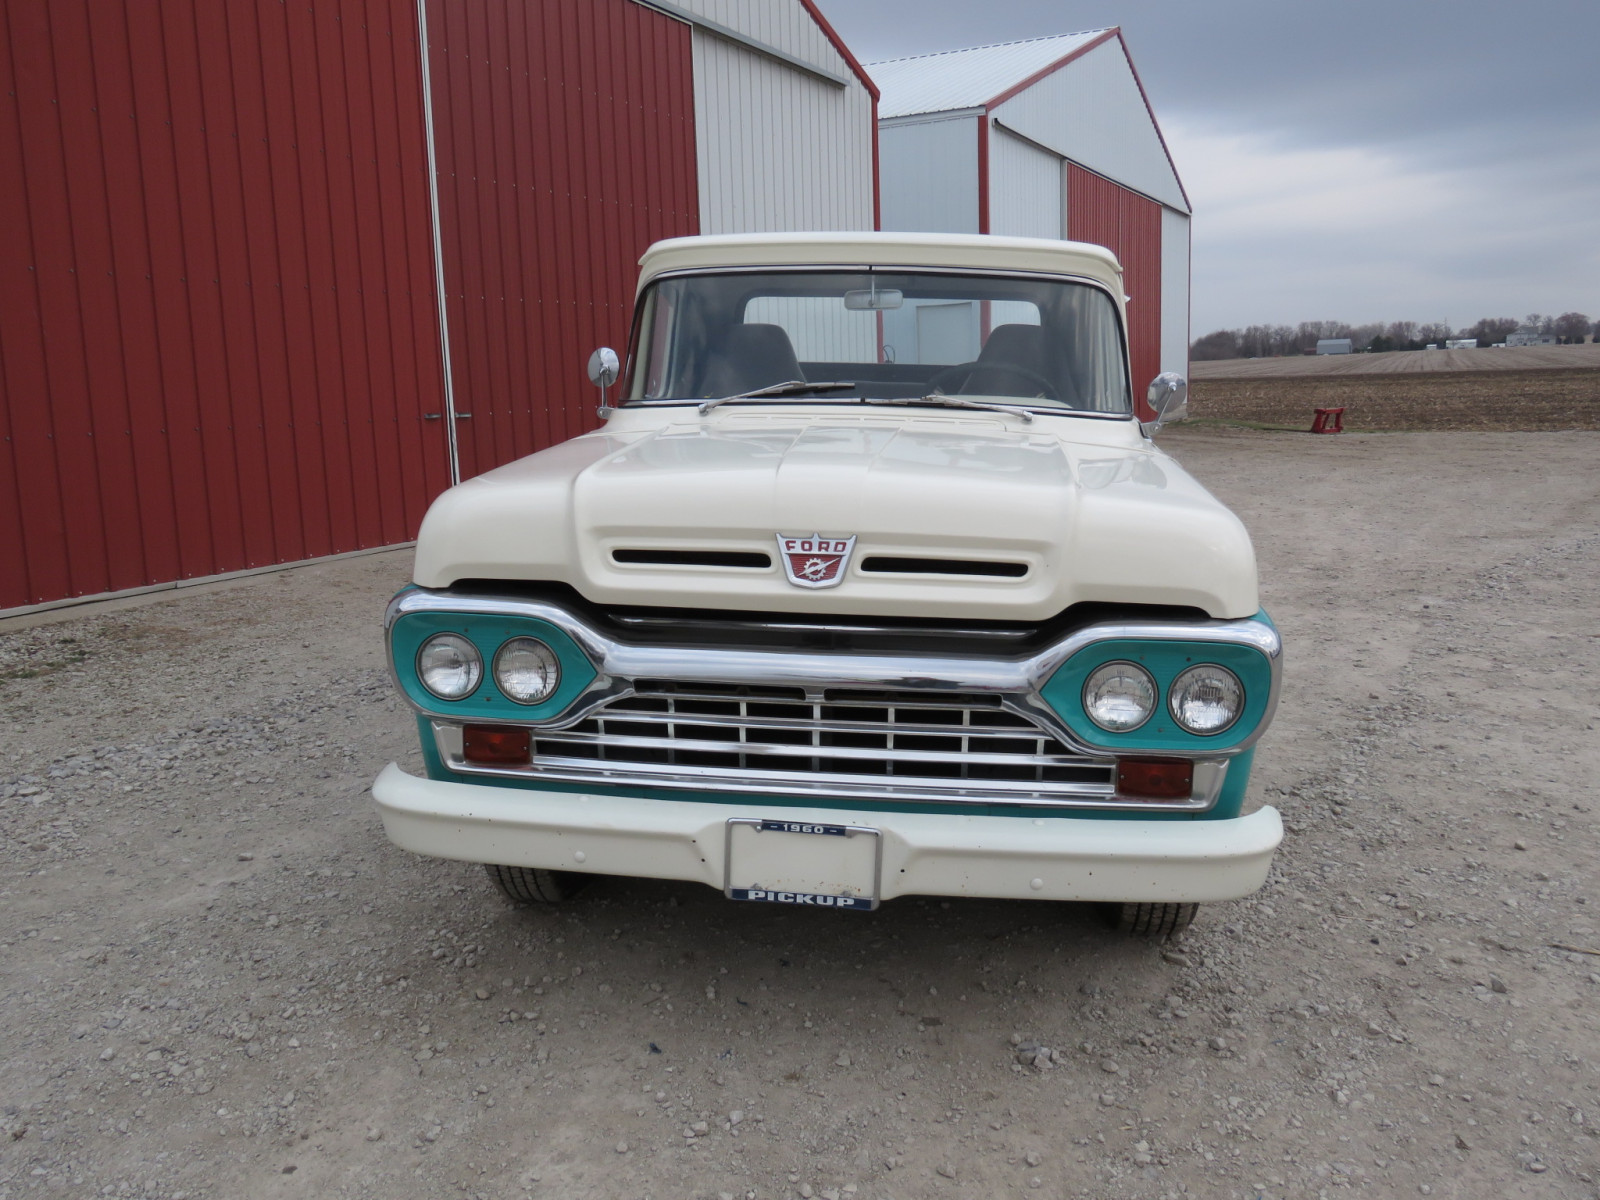 1960 Ford F100 Pickup - Image 2